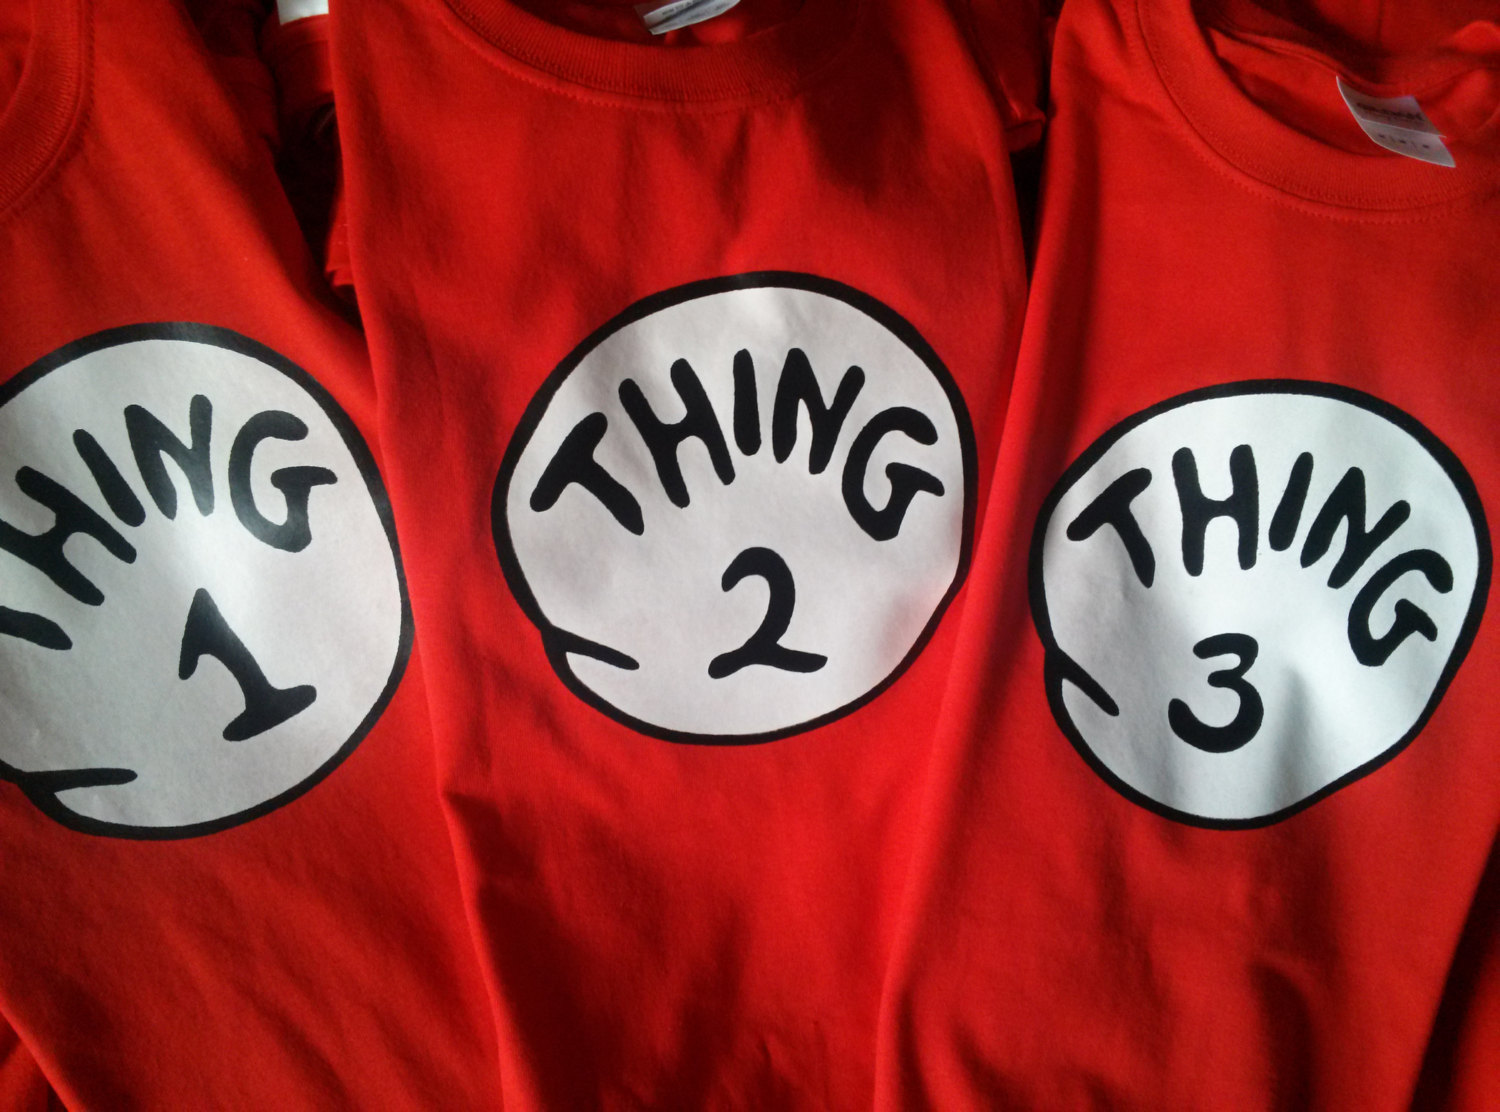 Thing 1 2 3 Seuss Shirt Personalized On Storenvy